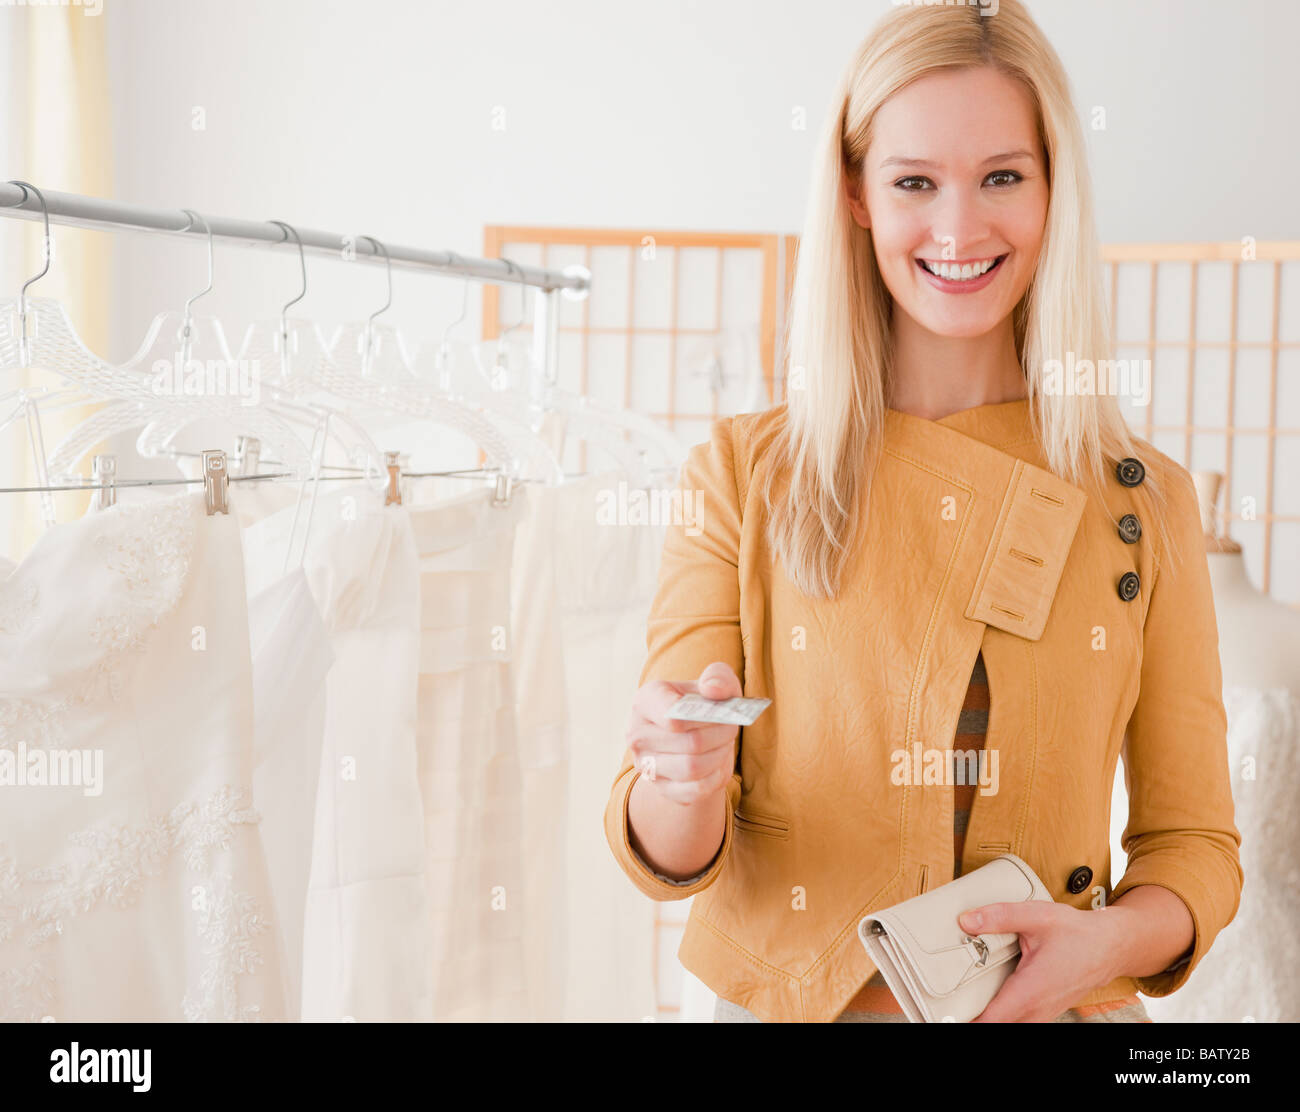 Portrait of young woman paying for wedding dress in bridal for Paying for a wedding dress